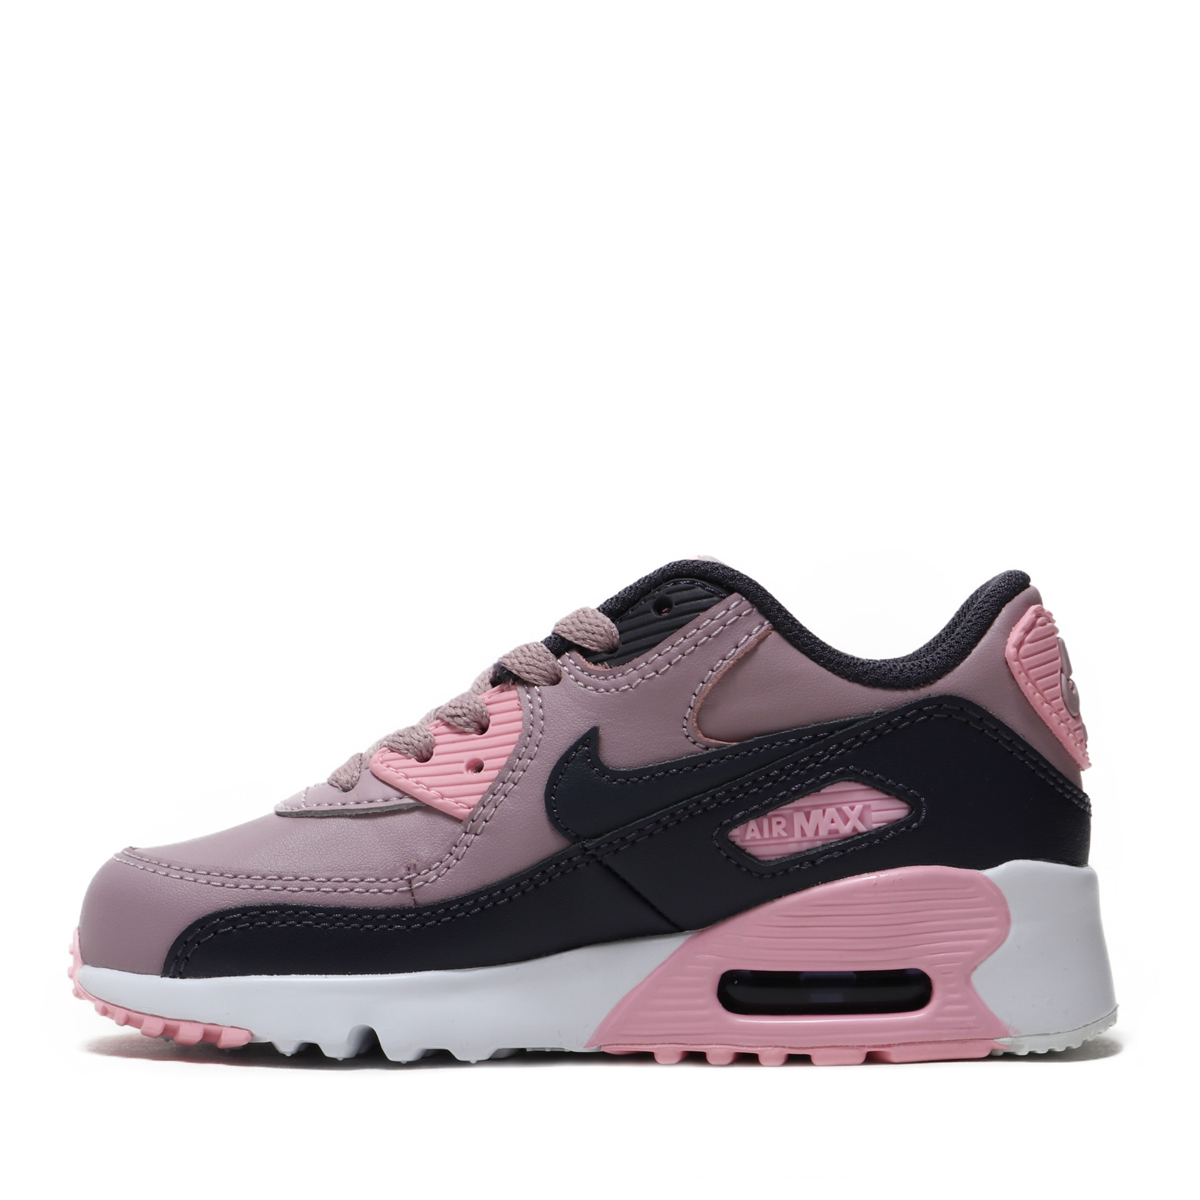 newest 31b78 1d91d ... NIKE AIR MAX 90 LTR (PS) (Kie Ney AMAX 90 LTR PS) ...